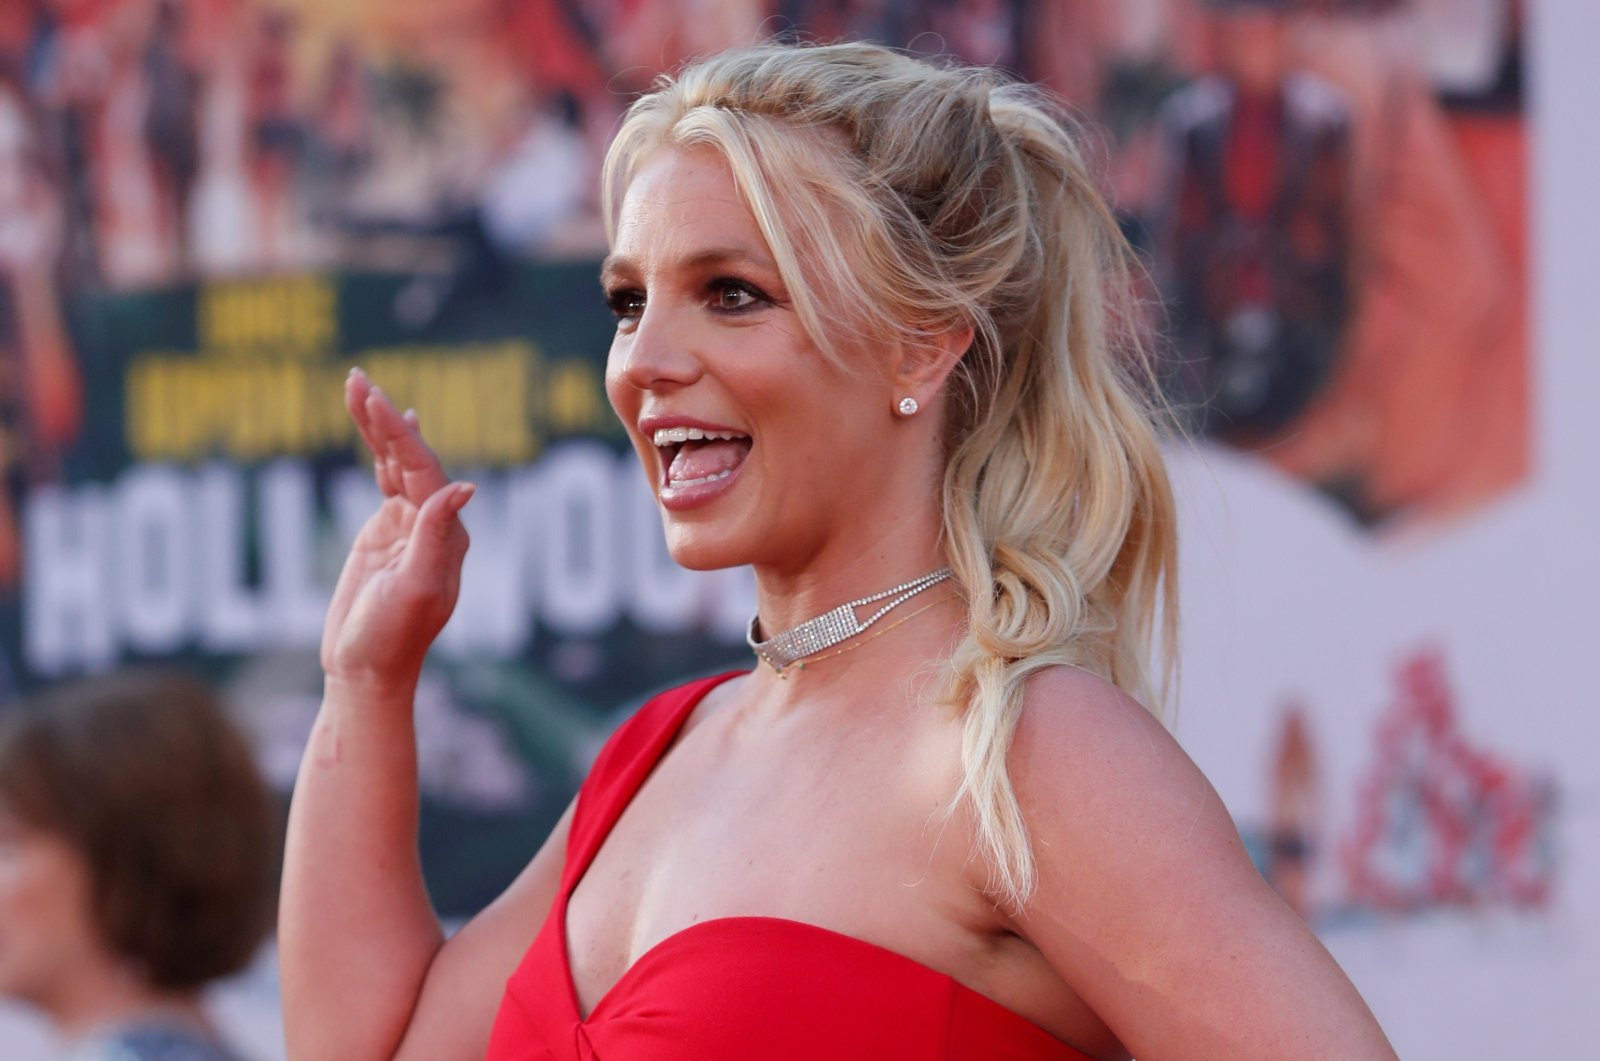 """Britney Spears poses at the premiere of """"Once Upon a Time In Hollywood"""" in Los Angeles, California, U.S., July 22, 2019. (Reuters Photo)"""